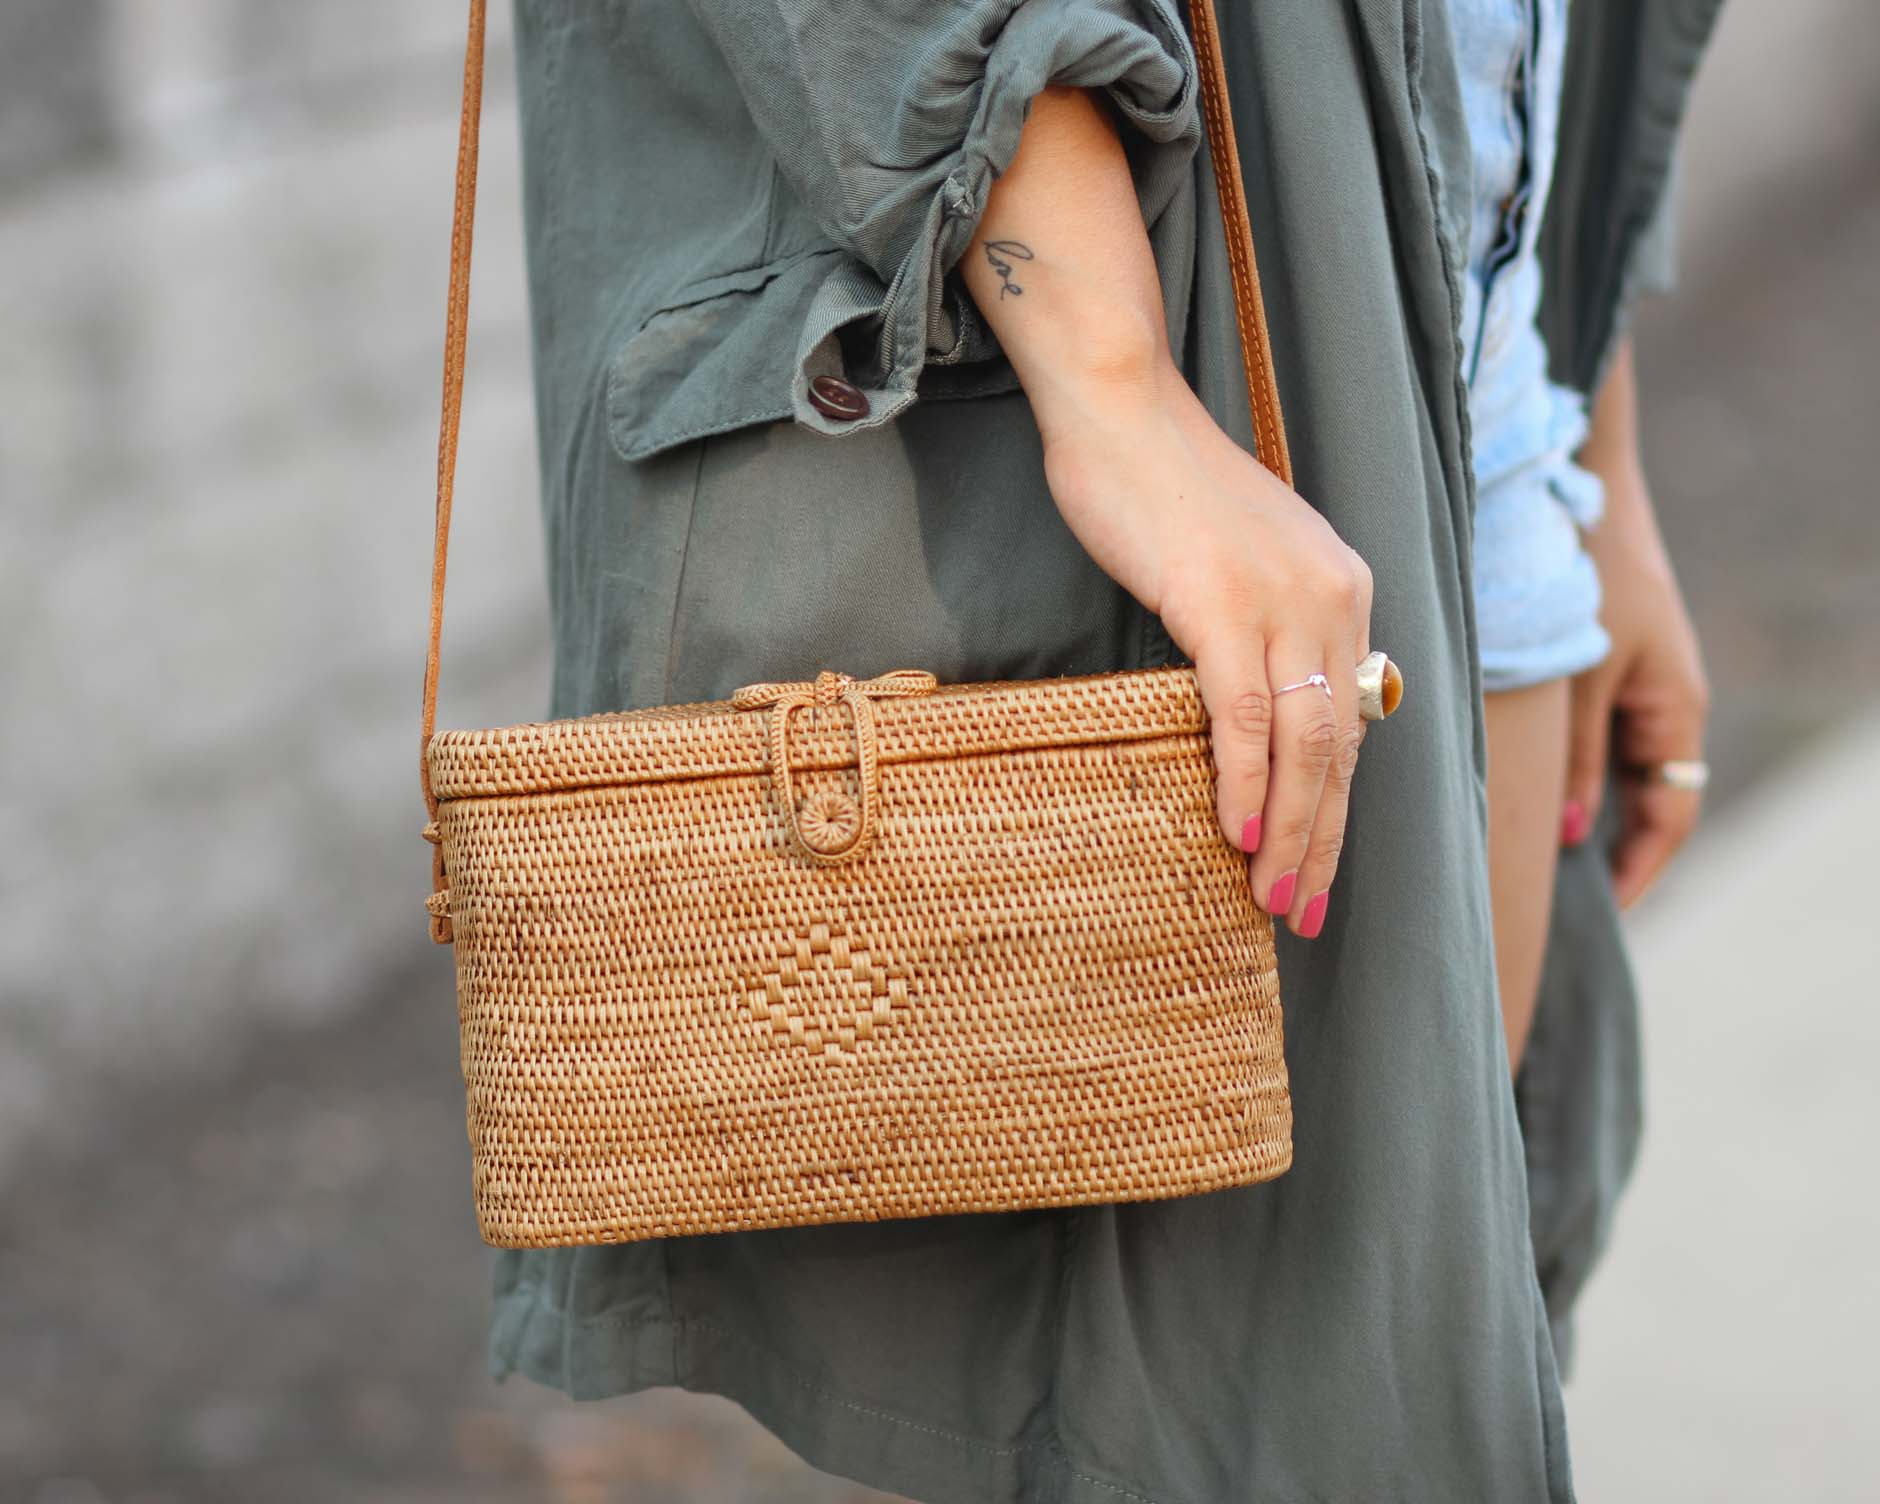 lifestyle blogger naty michele showing close up of basket bag